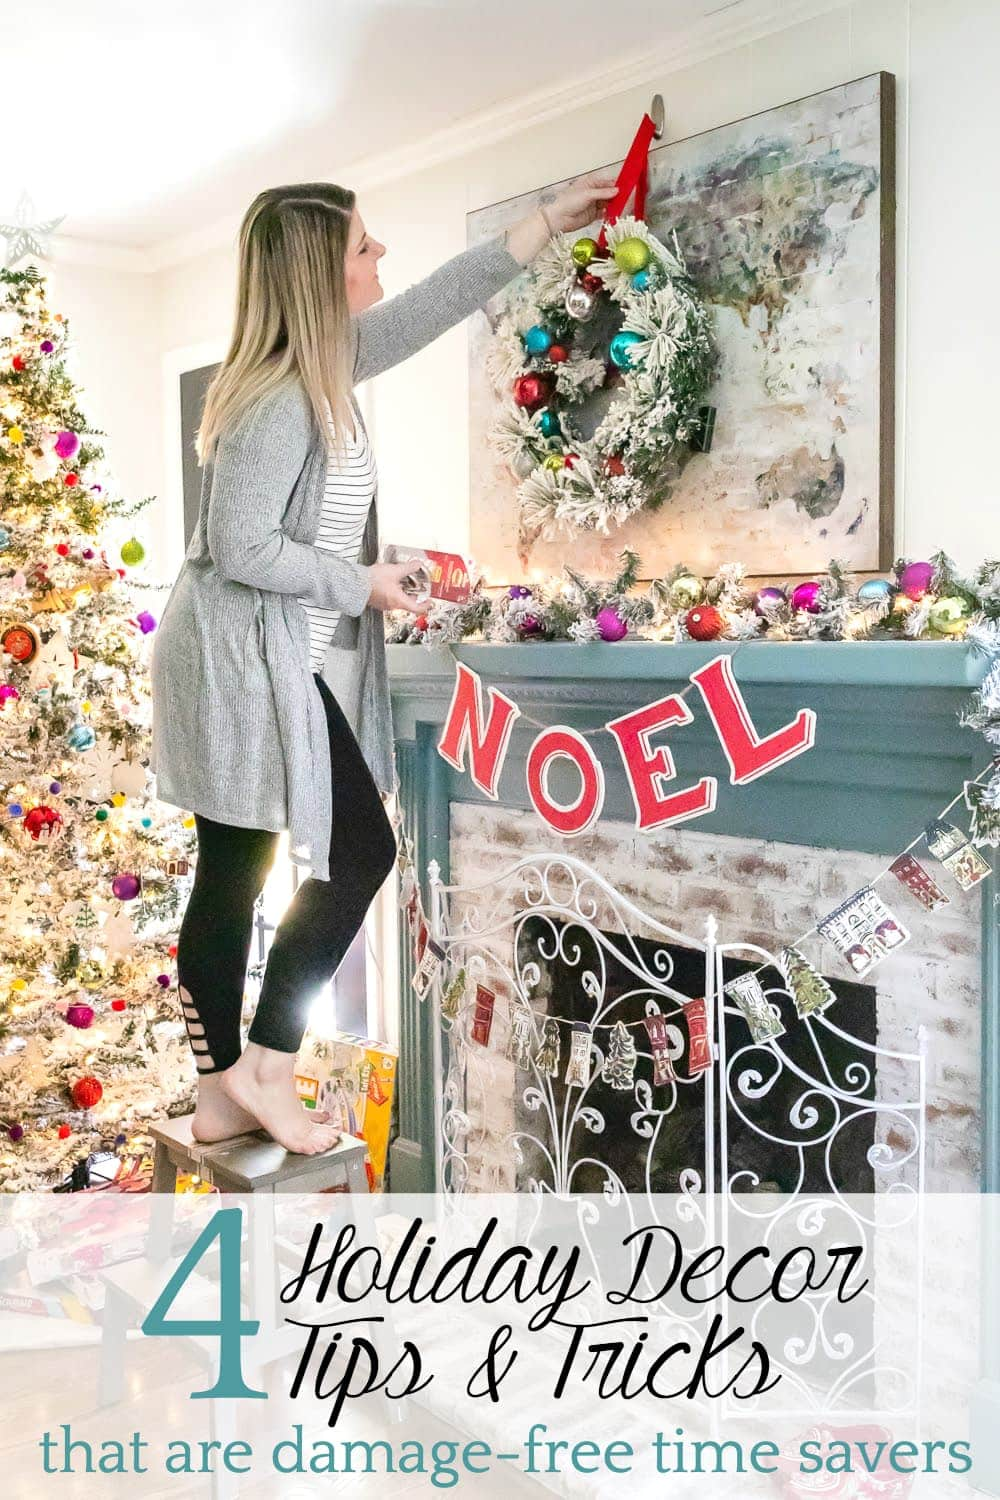 Christmas Decorating Tricks | How to hang wreaths and garlands without damaging walls or furniture